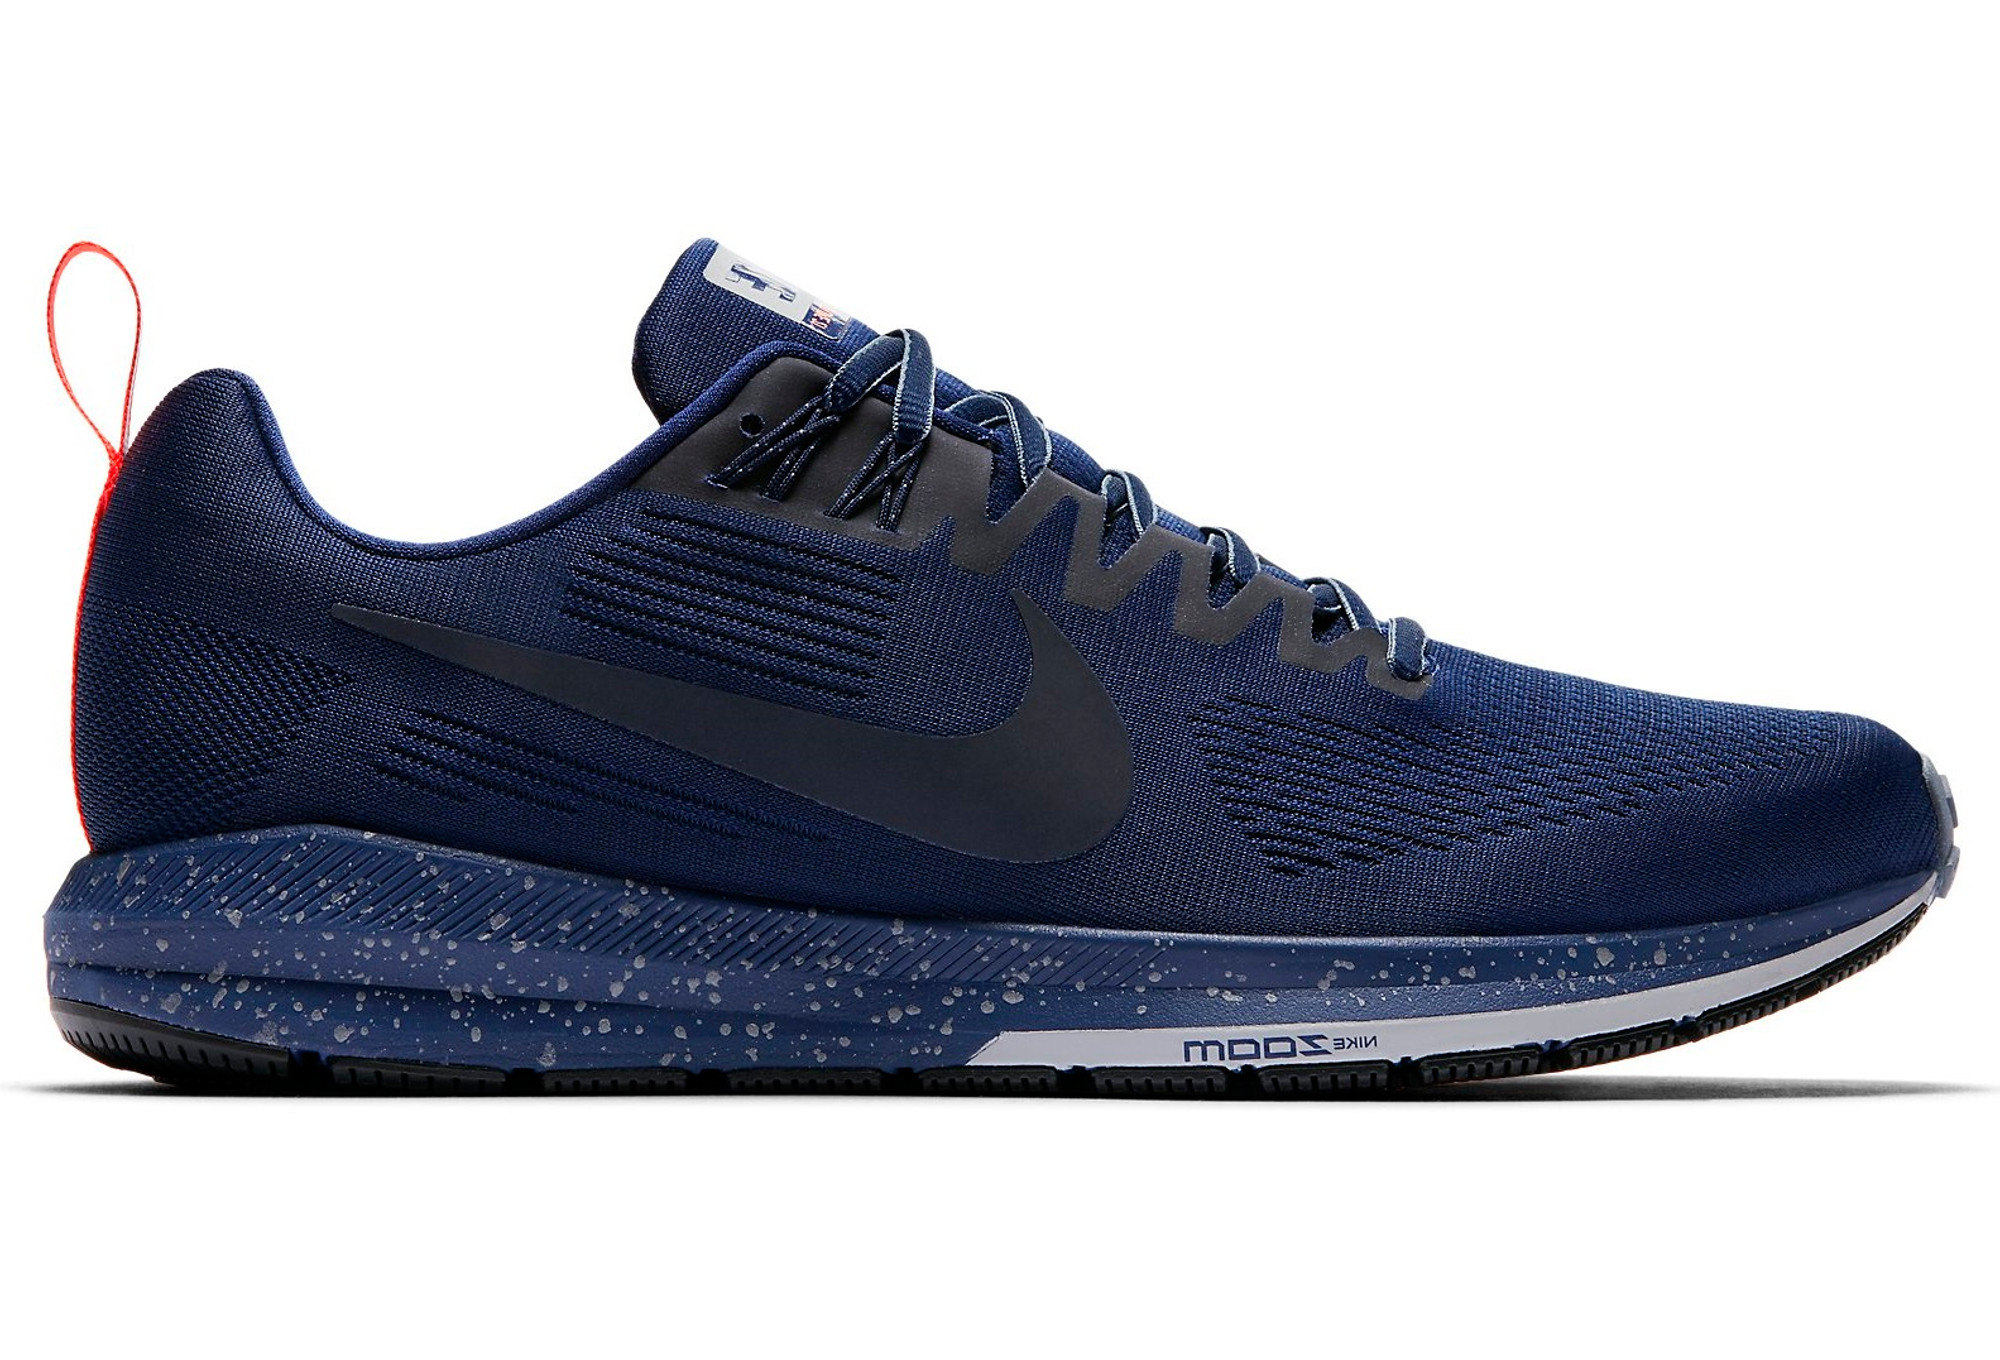 a9dabe665fd6 Nike Air Zoom Structure 21 Shield Blue Men